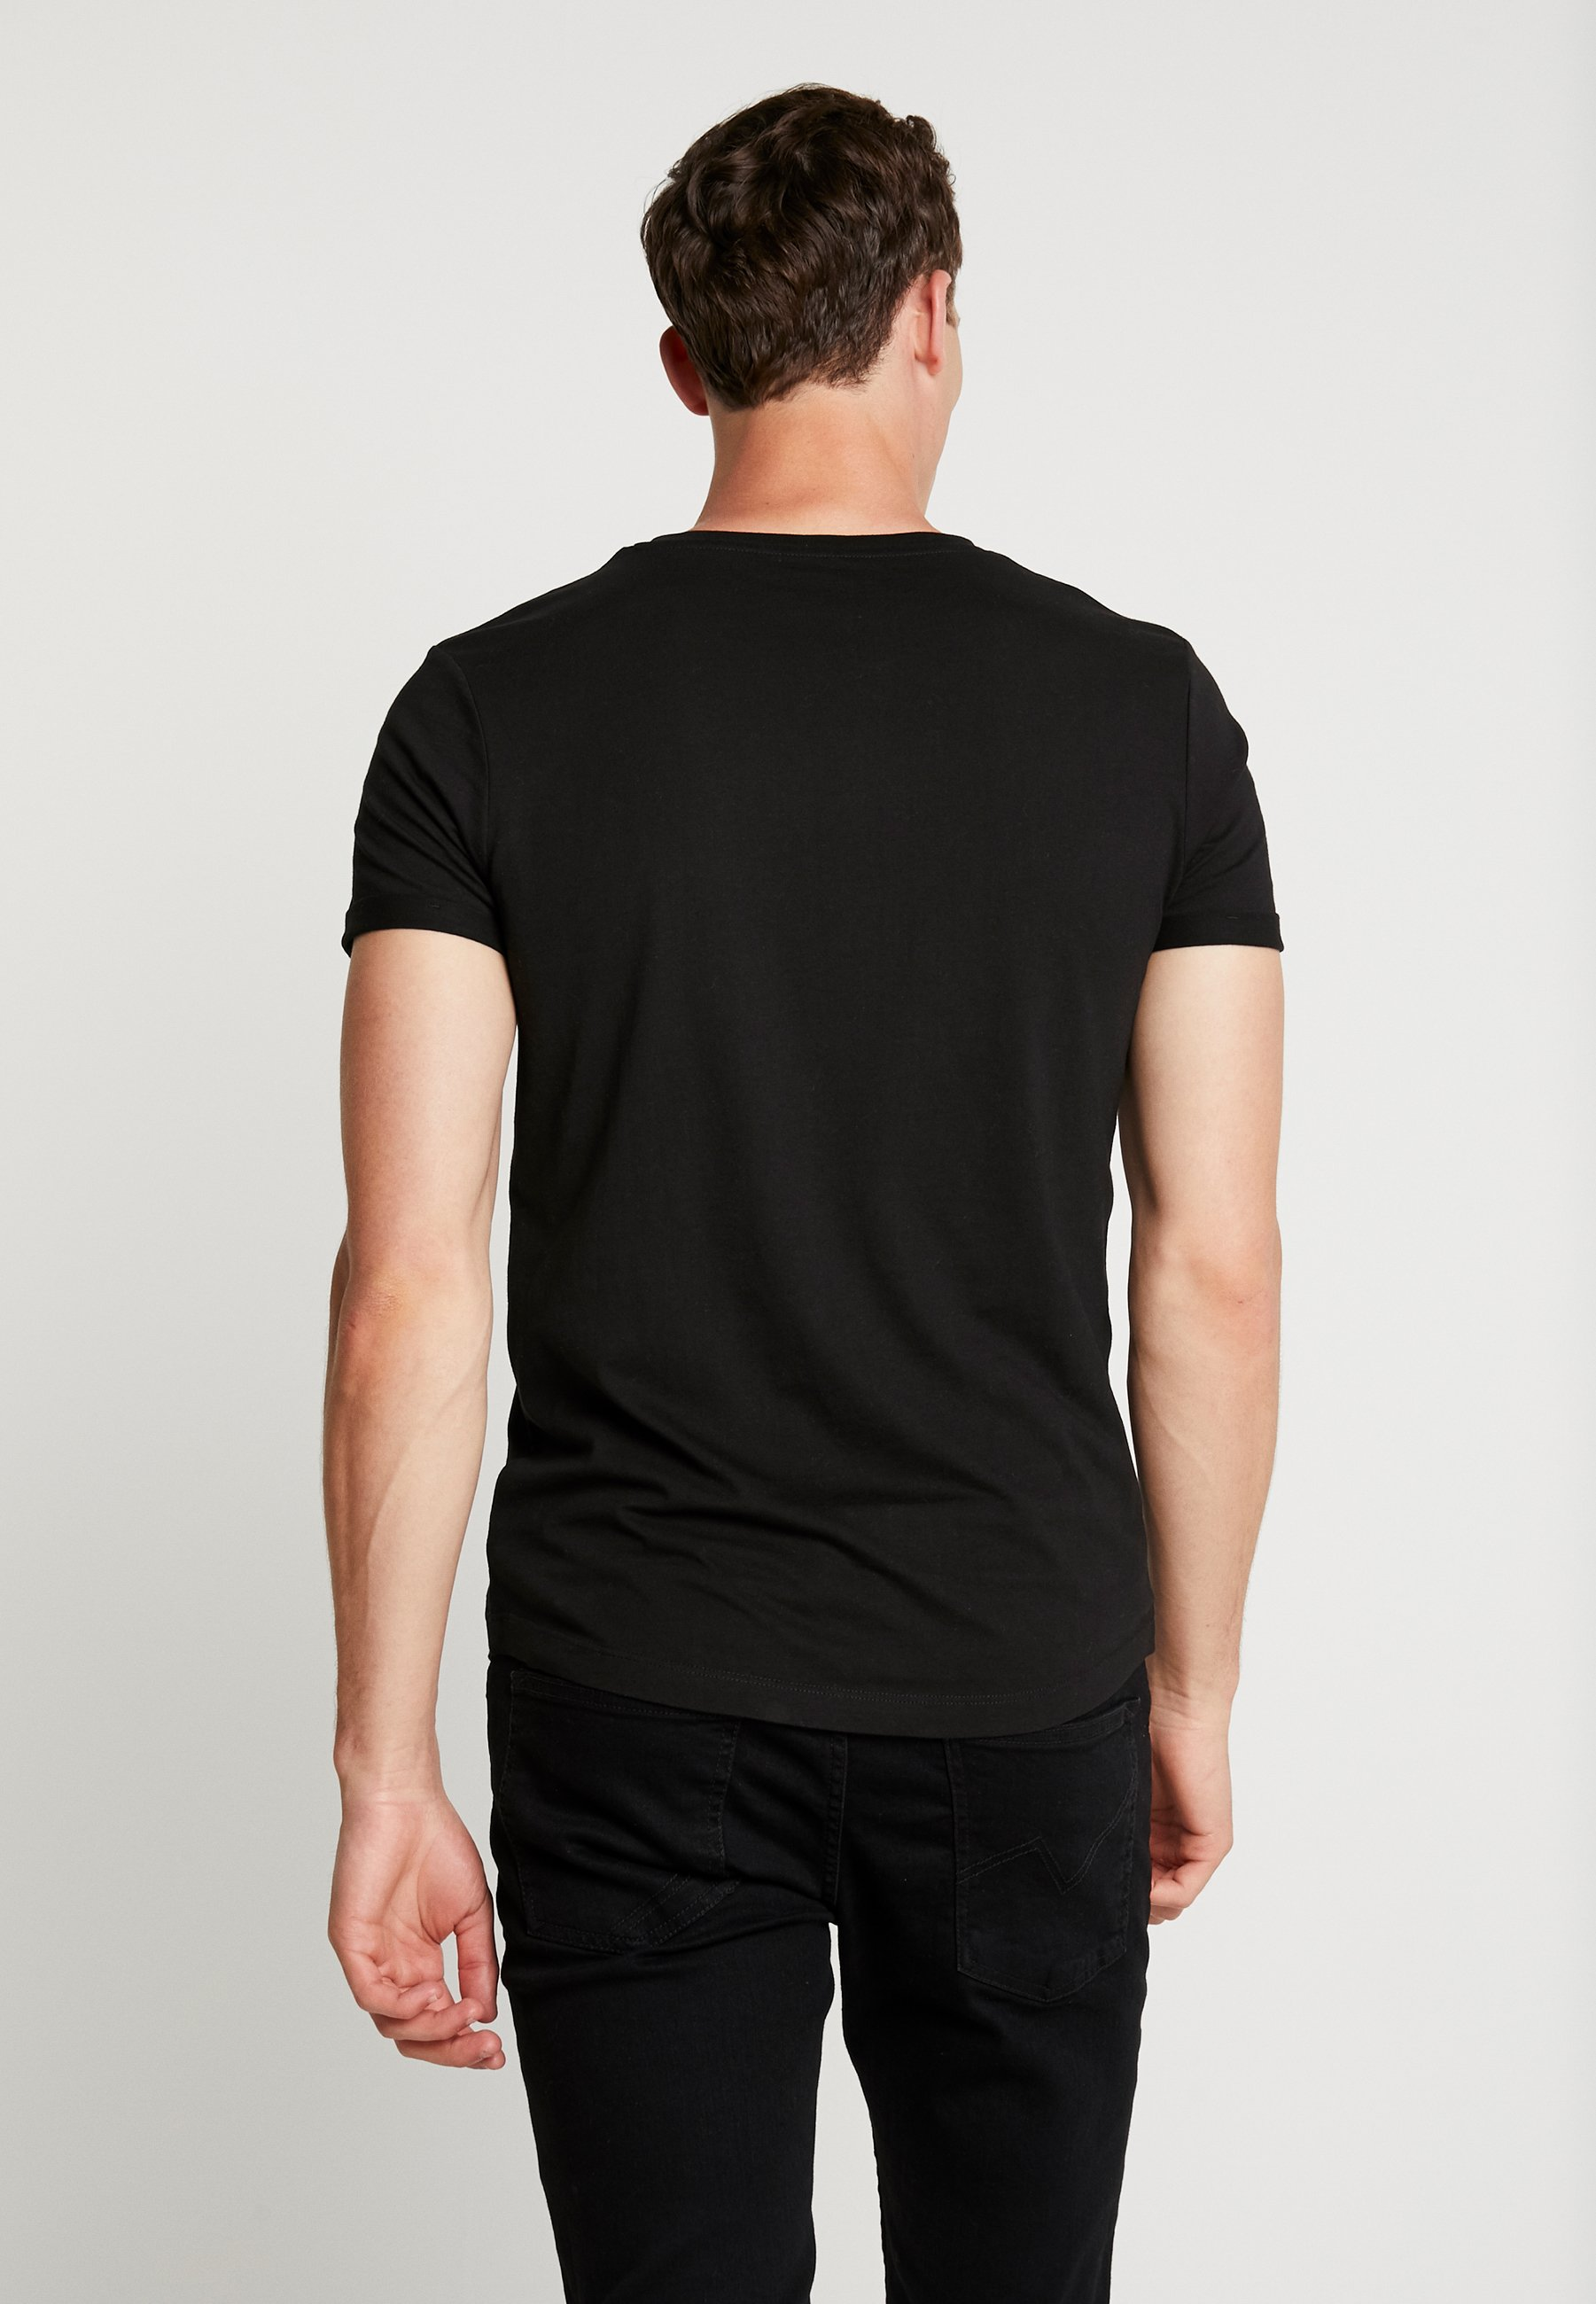 TOM TAILOR DENIM W. TURNUP - Print T-shirt - black/grey HaxJf